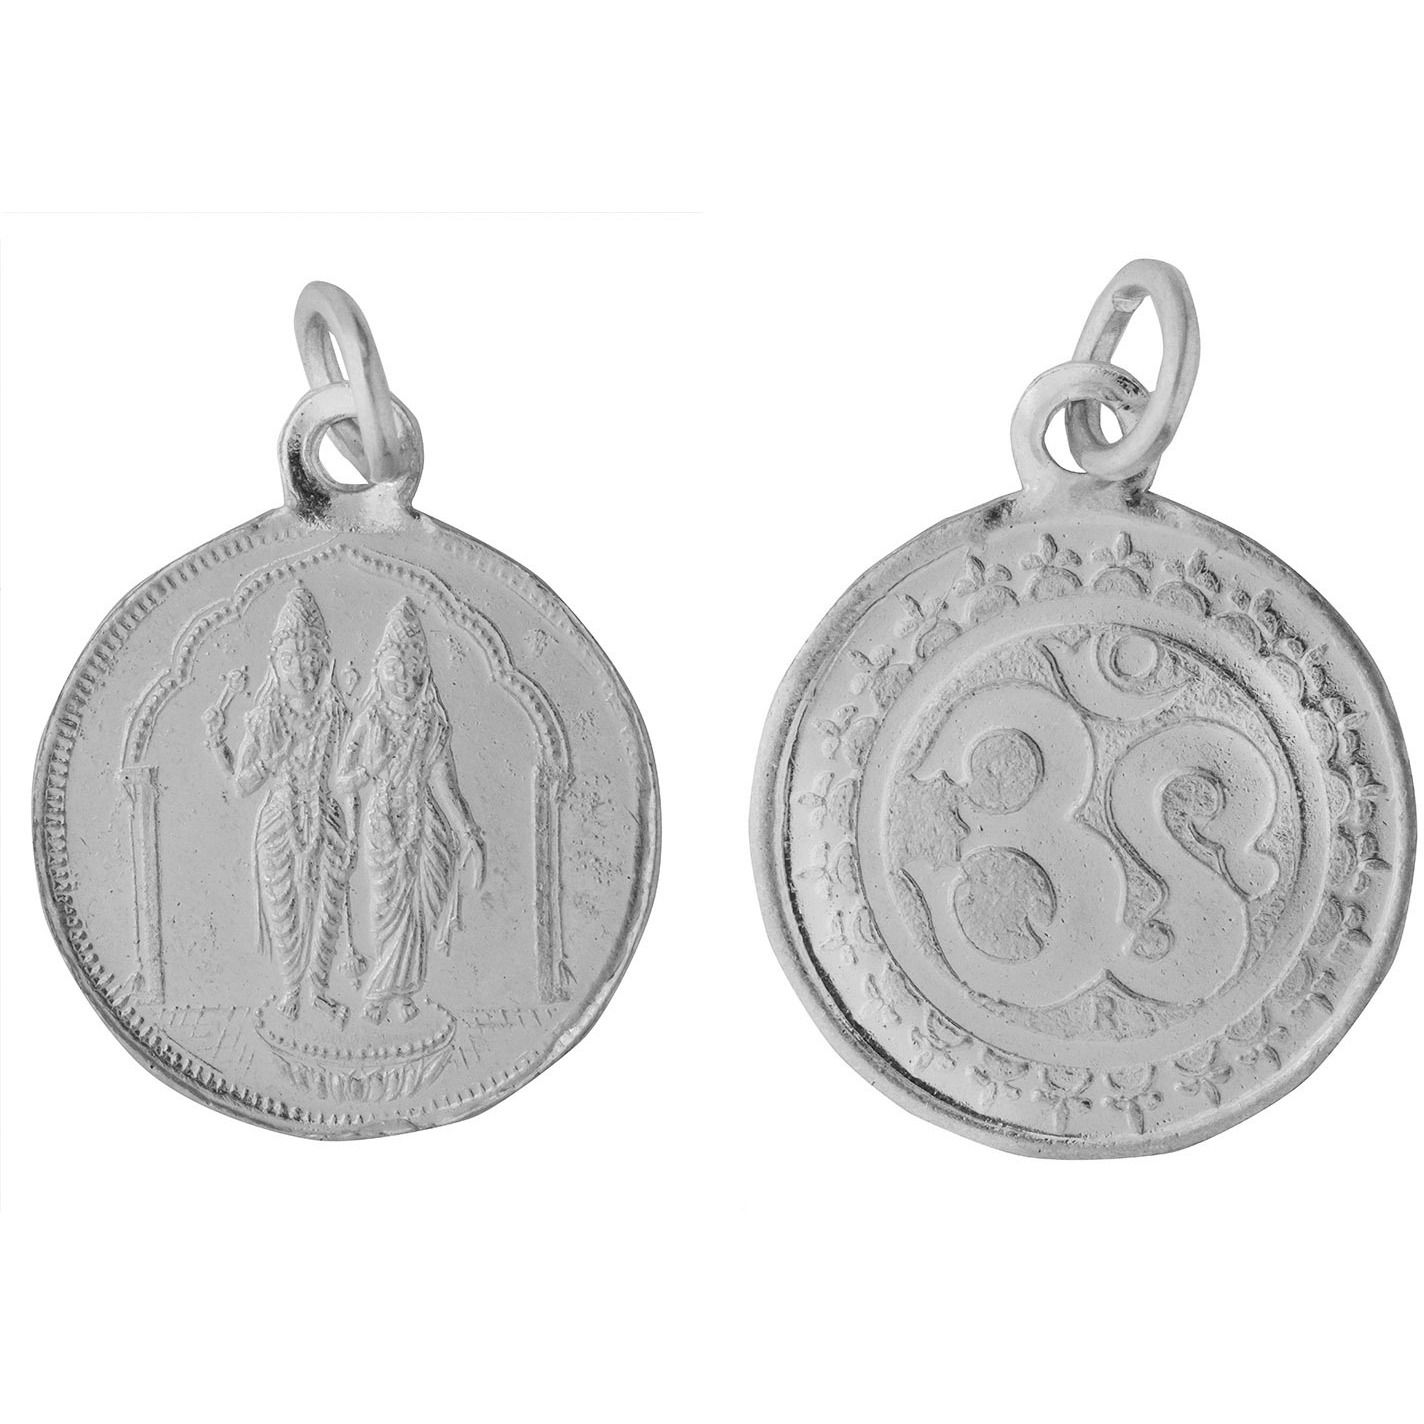 Vishnu-Lakshmi Pendant with OM on Reverse (Two Sided Pendant)